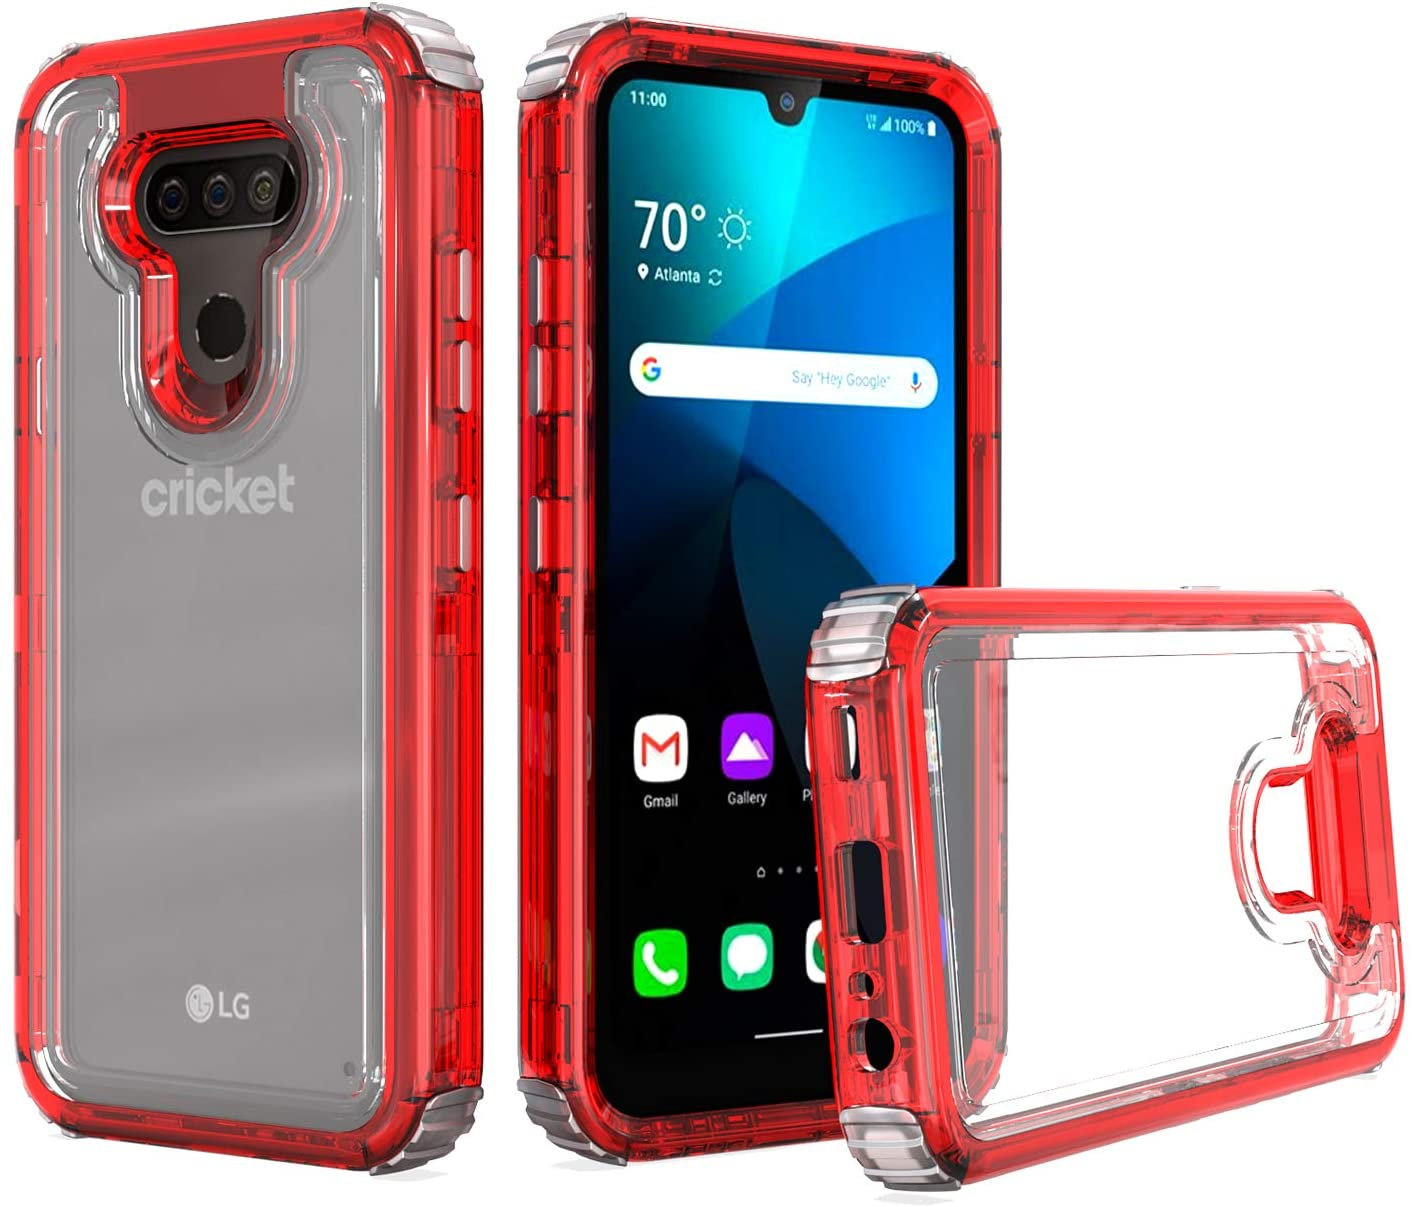 UNC Pro 3 in 1 Cell Phone Case for LG Harmony 4/ LG Xpression Plus 3, Heavy Duty Full Edge Protection Hybrid Shockproof Bumper Case Cover, Clear Red